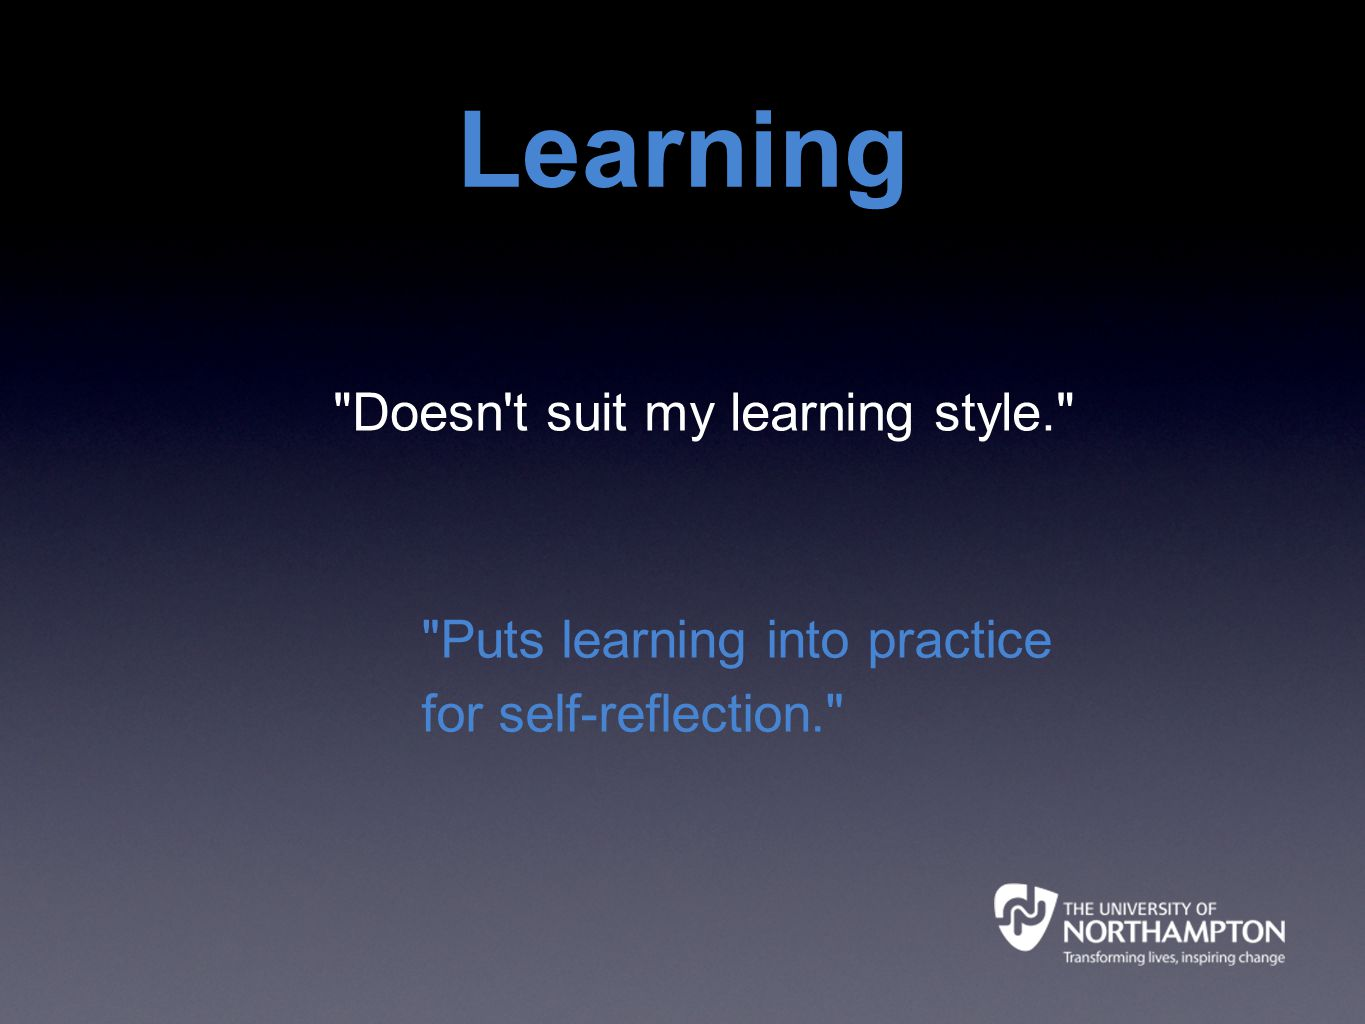 Doesn t suit my learning style. Puts learning into practice for self-reflection. Learning